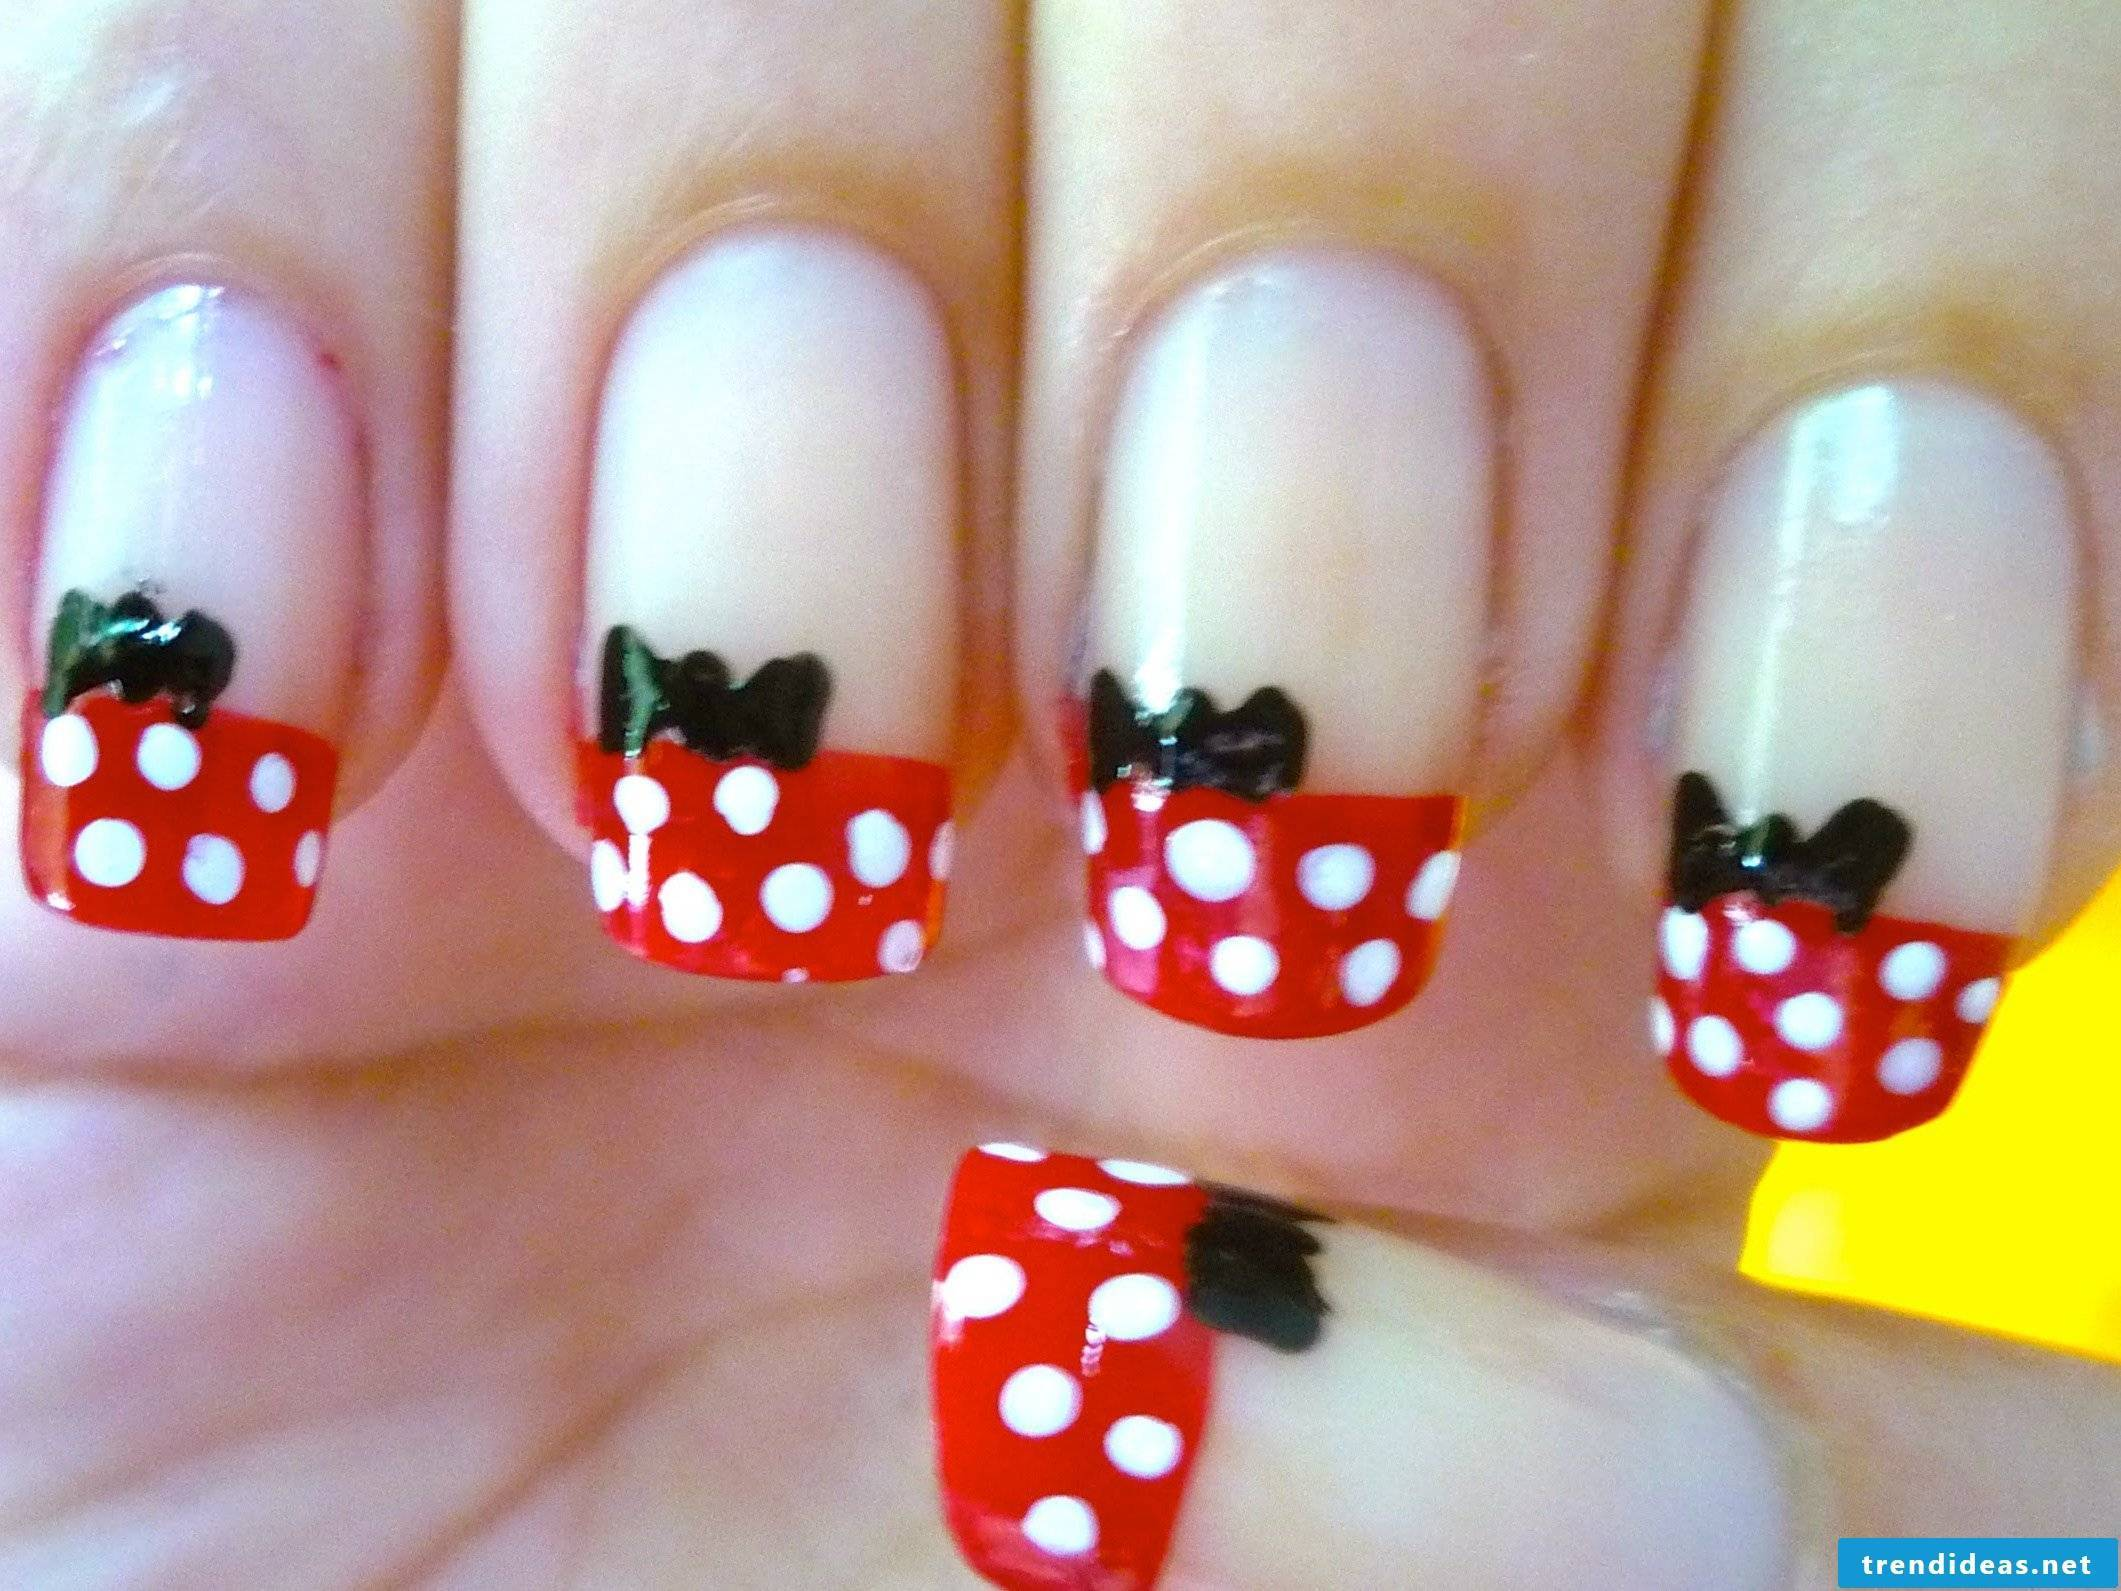 Minnie french nails, easy to do yourself